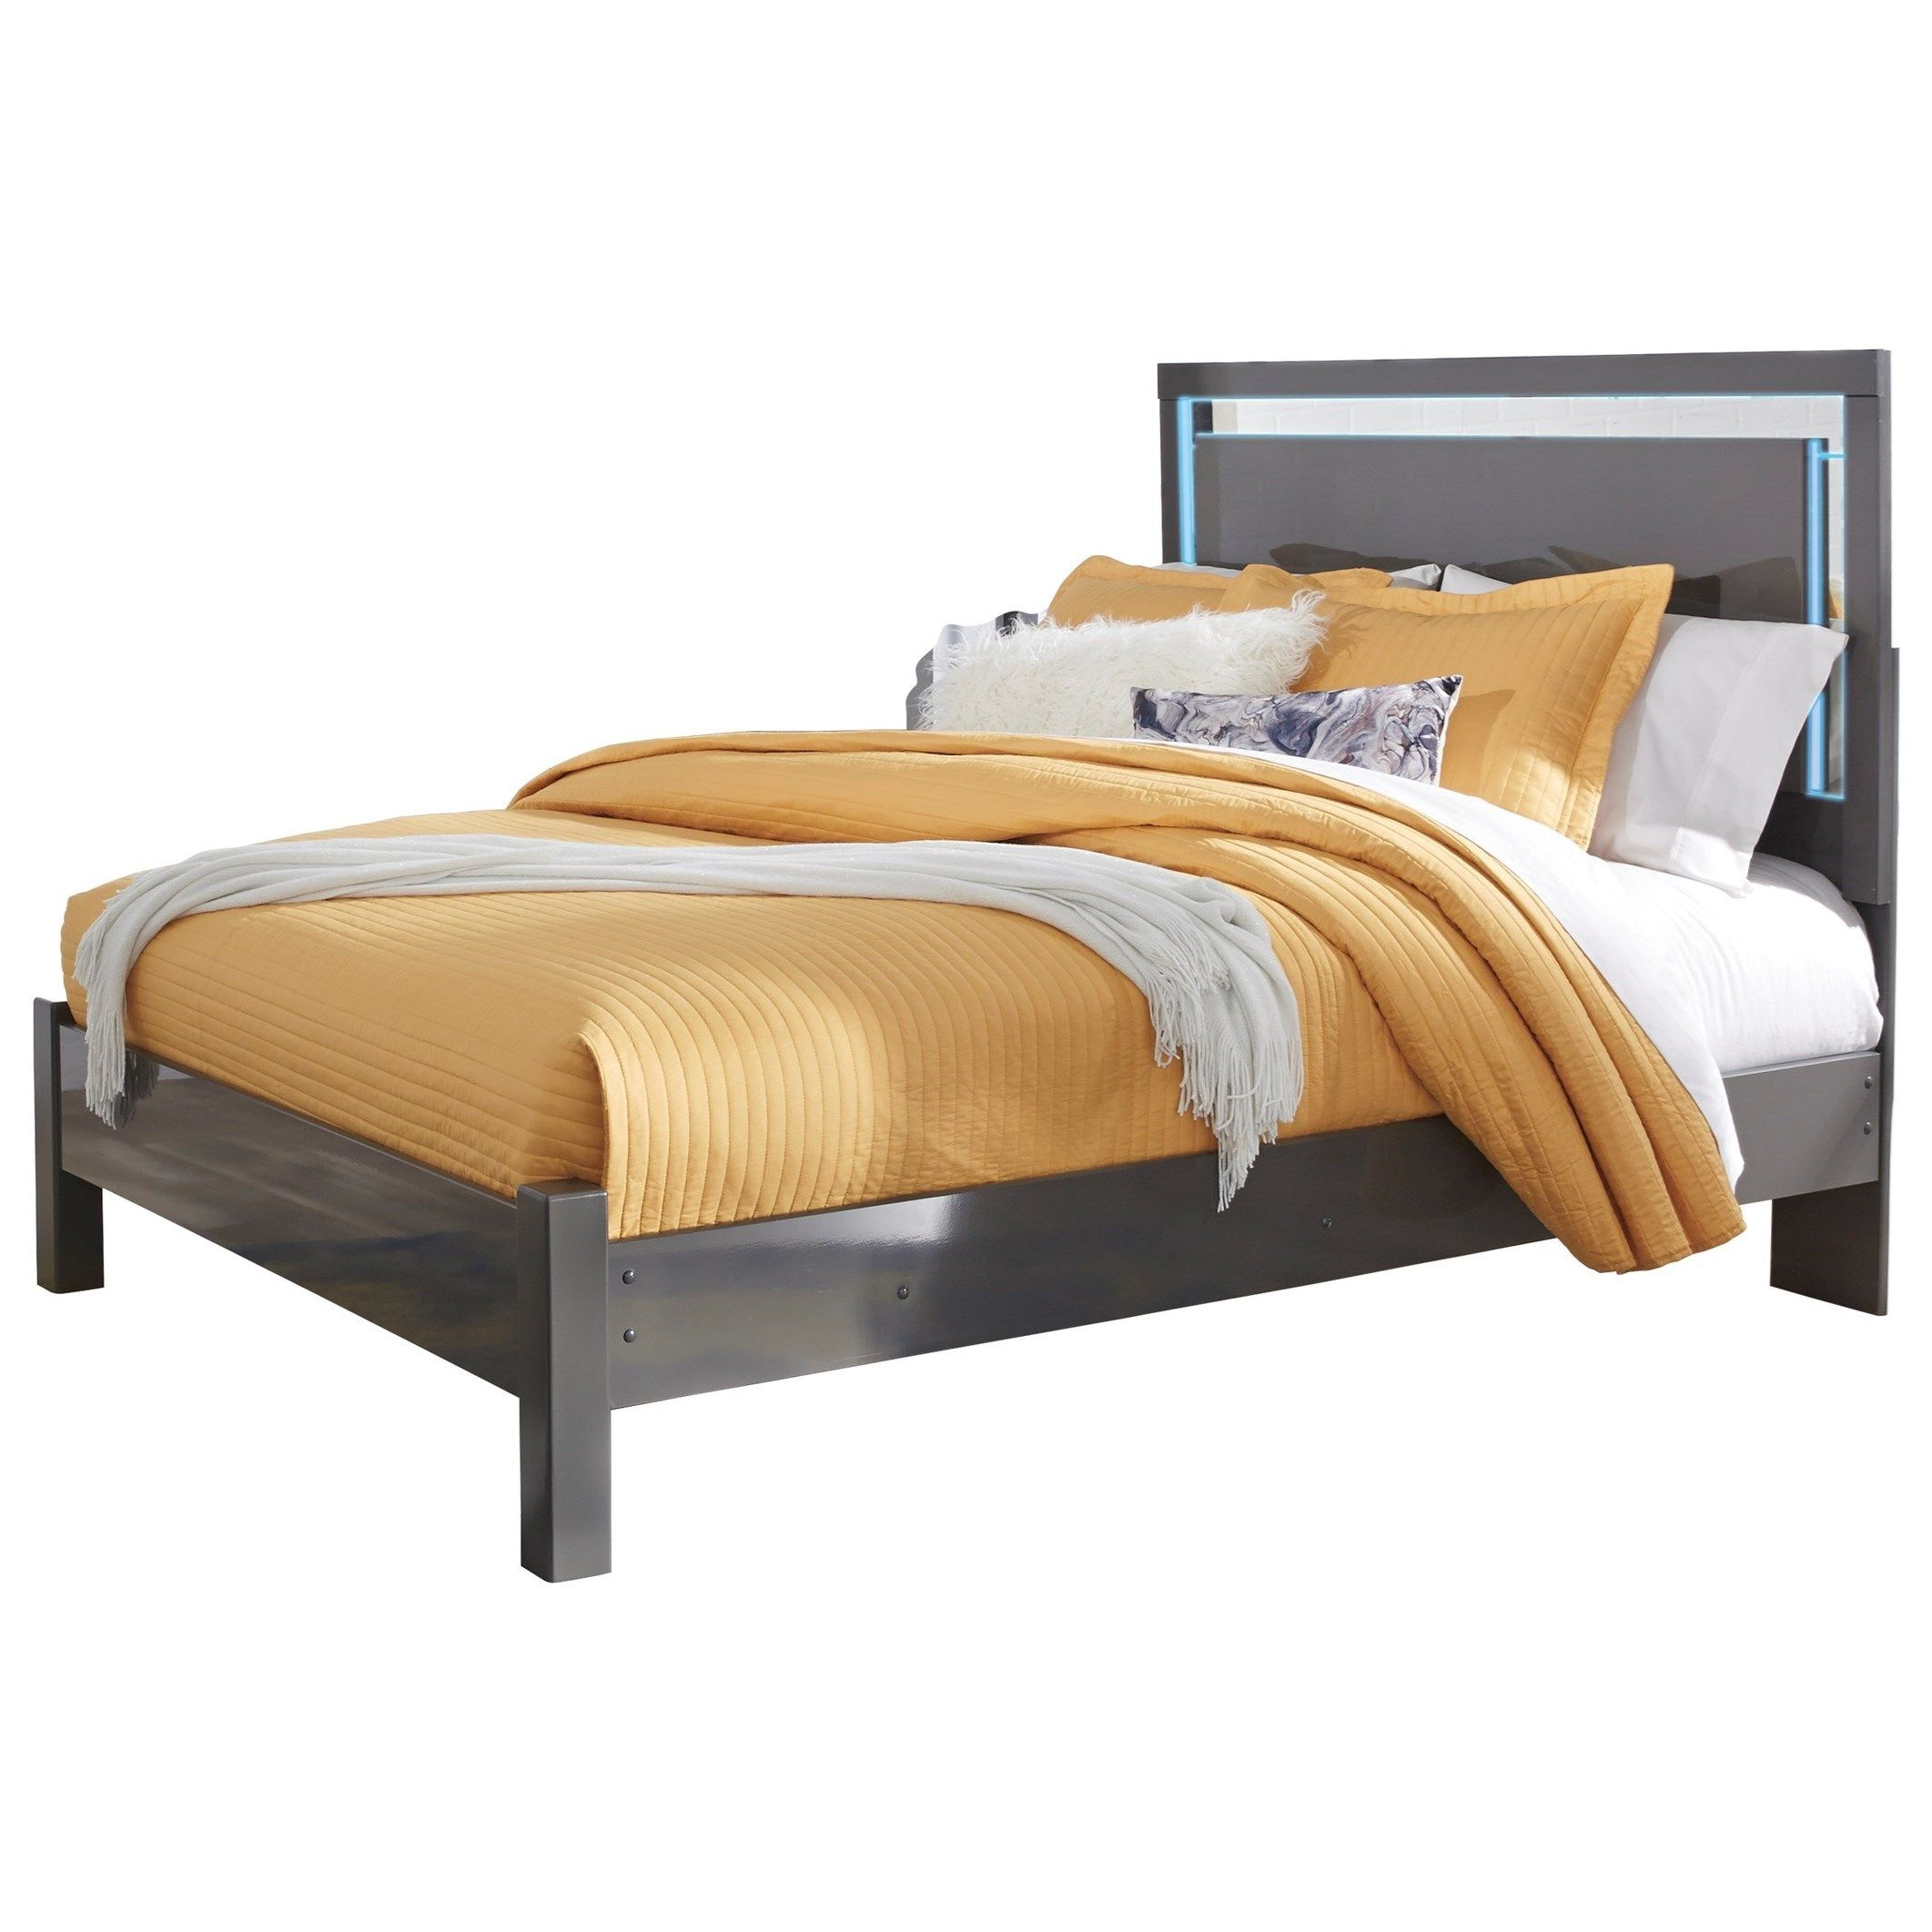 Steelson Contemporary Queen Panel Bed With LED Lighting In